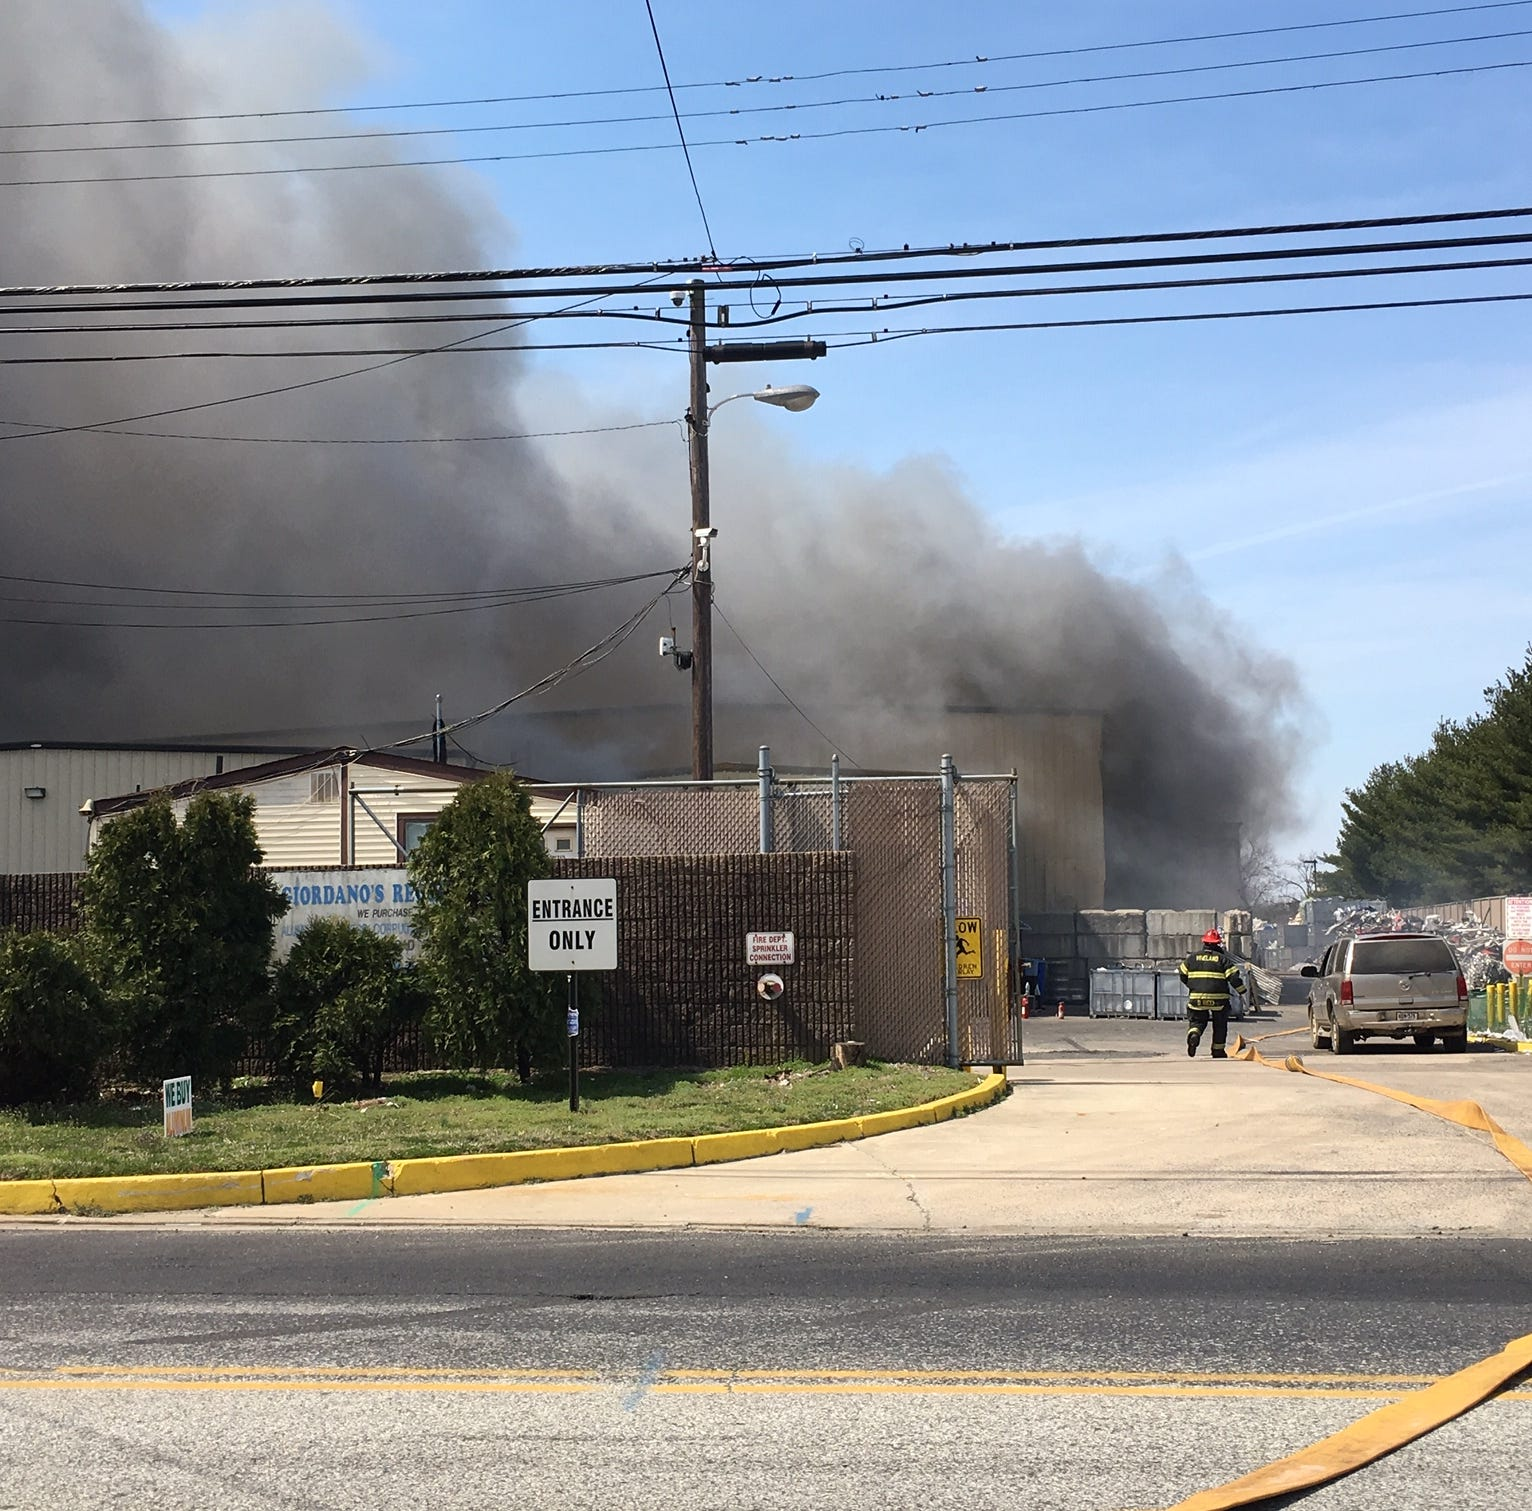 Vineland crews fighting fire at Giordano's Recycling, water tenders called